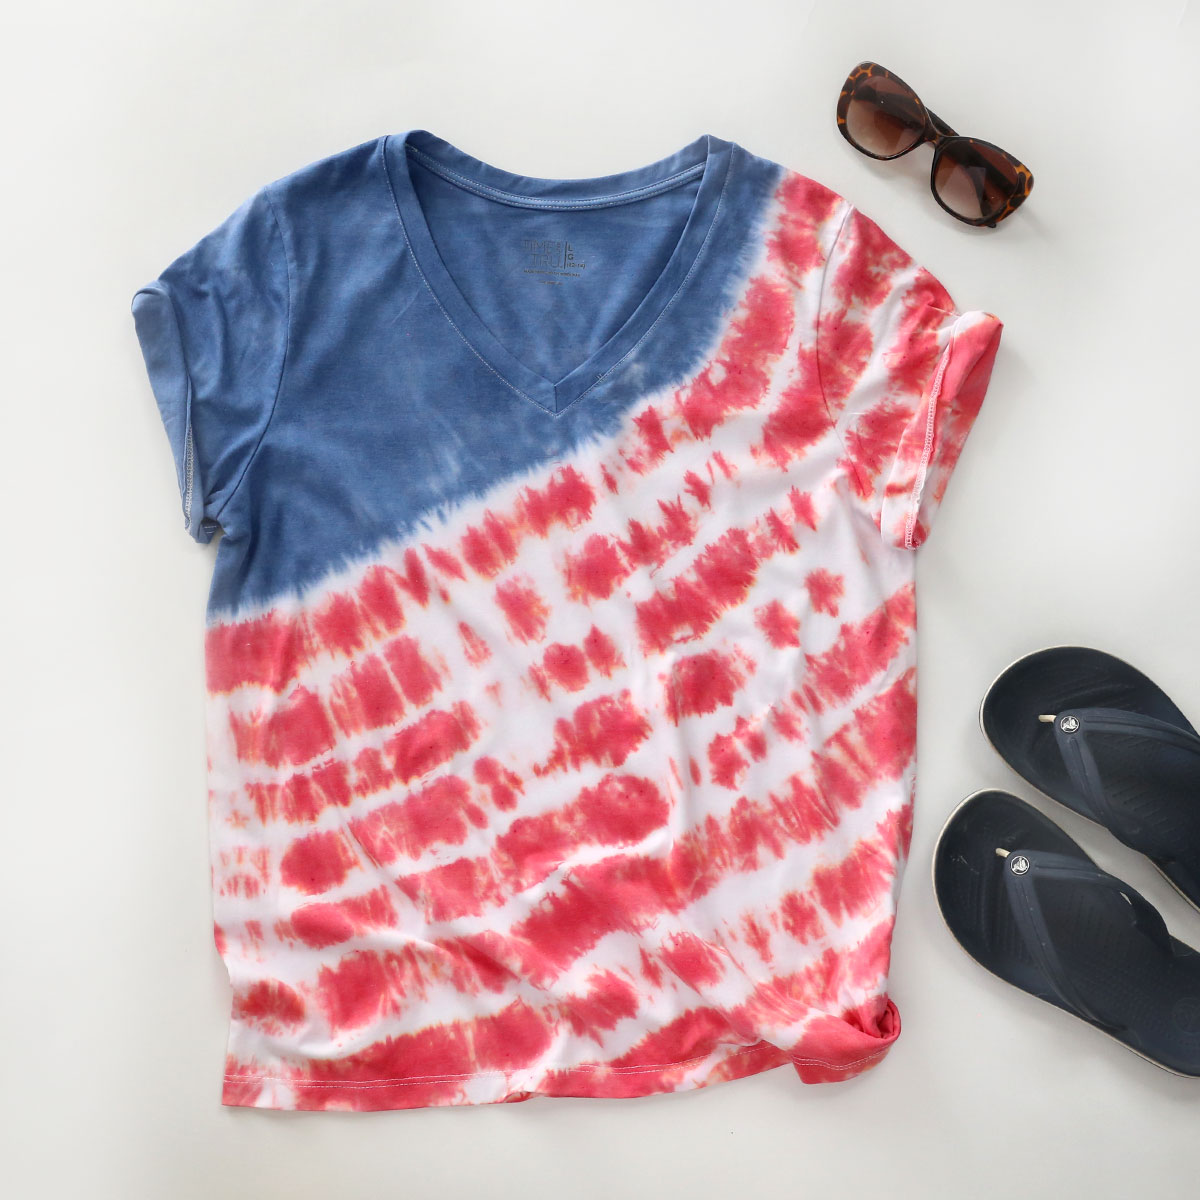 Red white and blue tie dye shirt for the Fourth of July